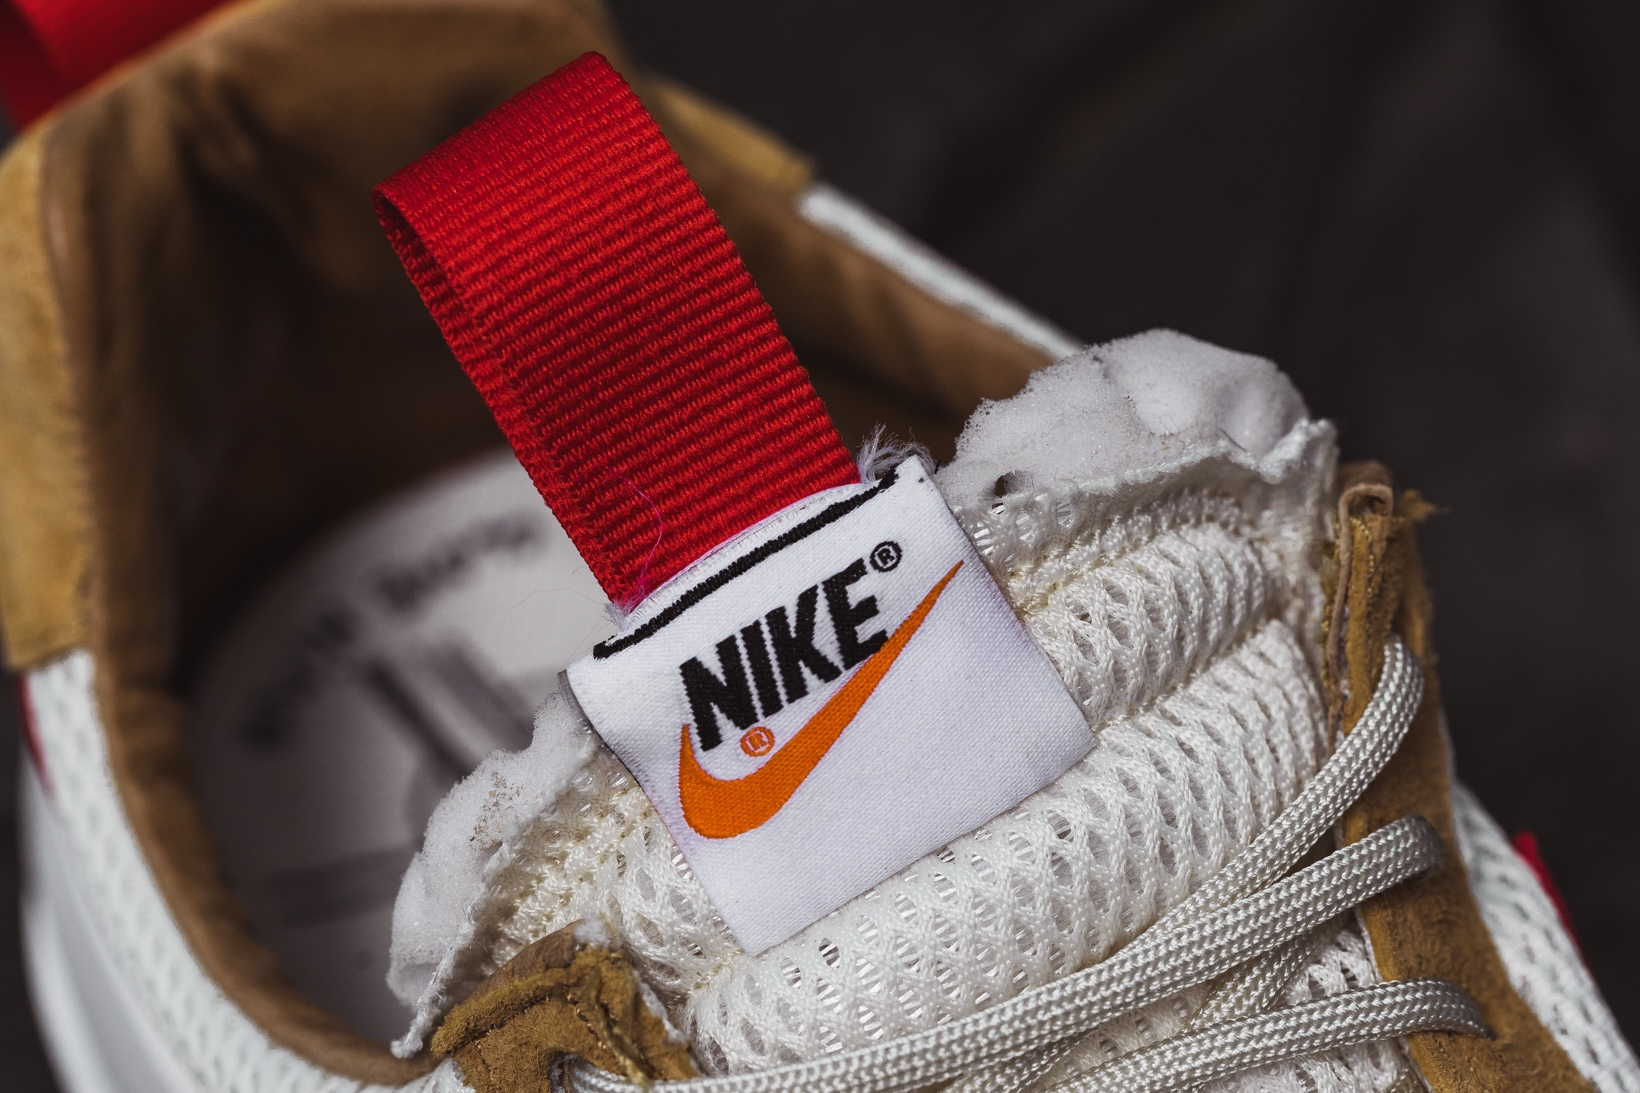 39bd7471689136 ... Tom Sachs x NikeCraft Mars Yard 2.0 release. In the meantime